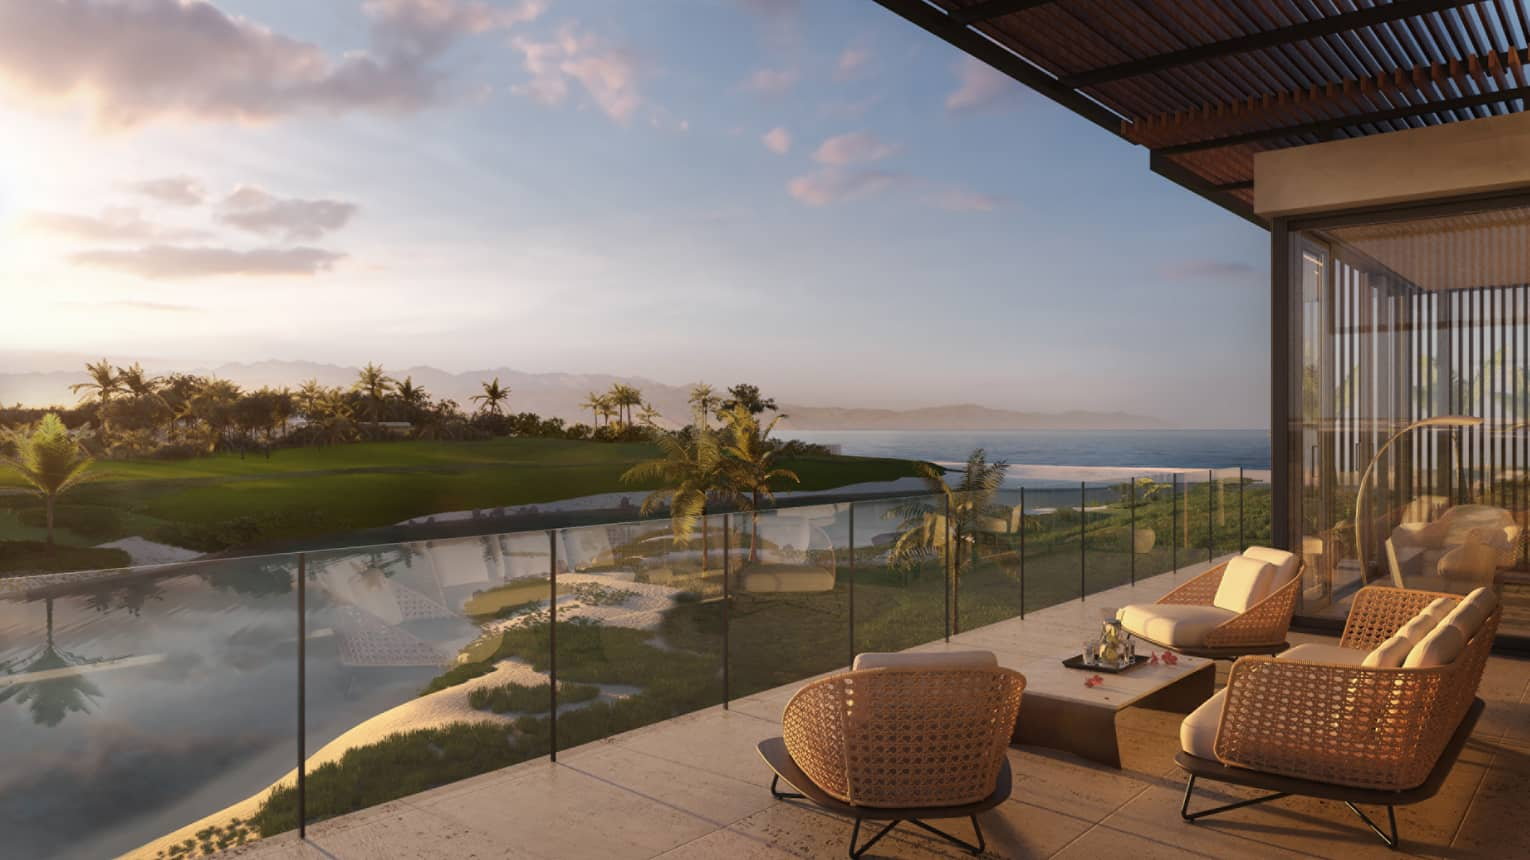 Modern wicker patio furniture by glass balcony overlooking water, green lawns at sunset